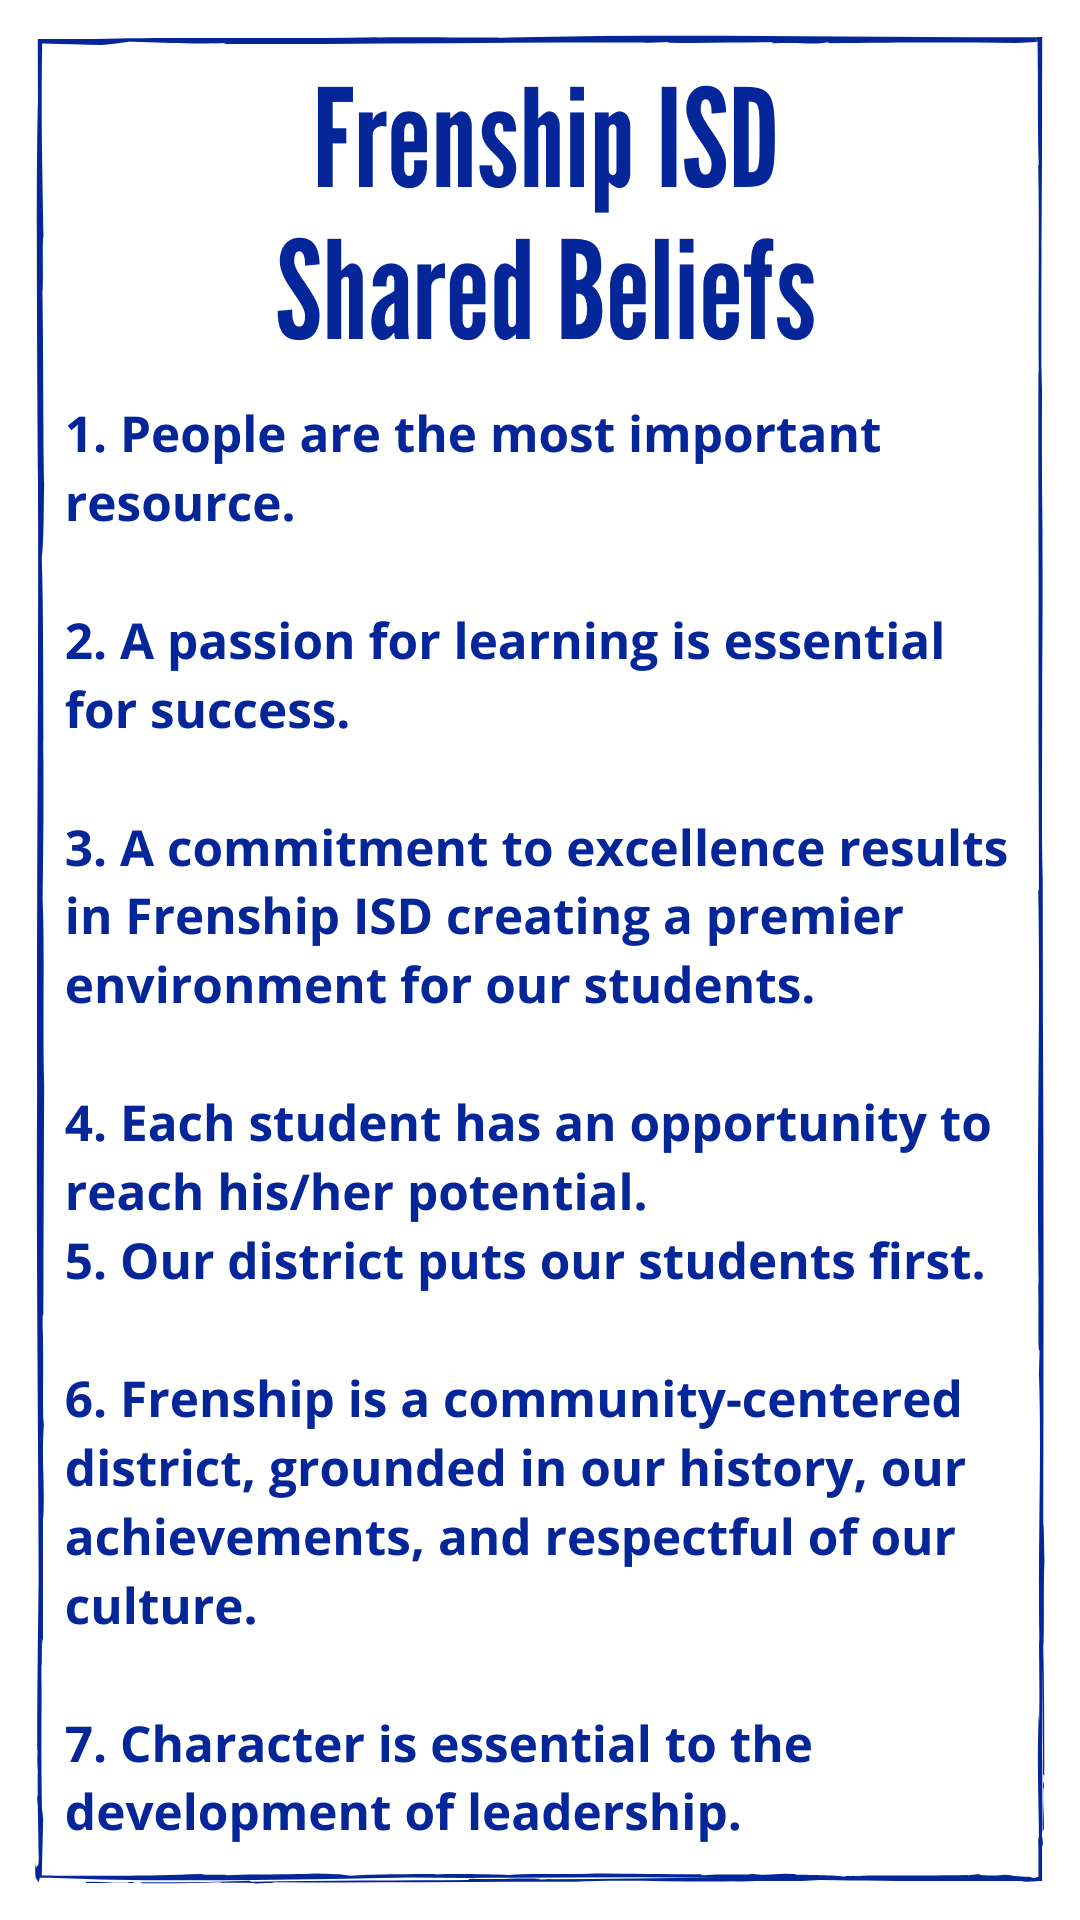 FISD Shared beliefs